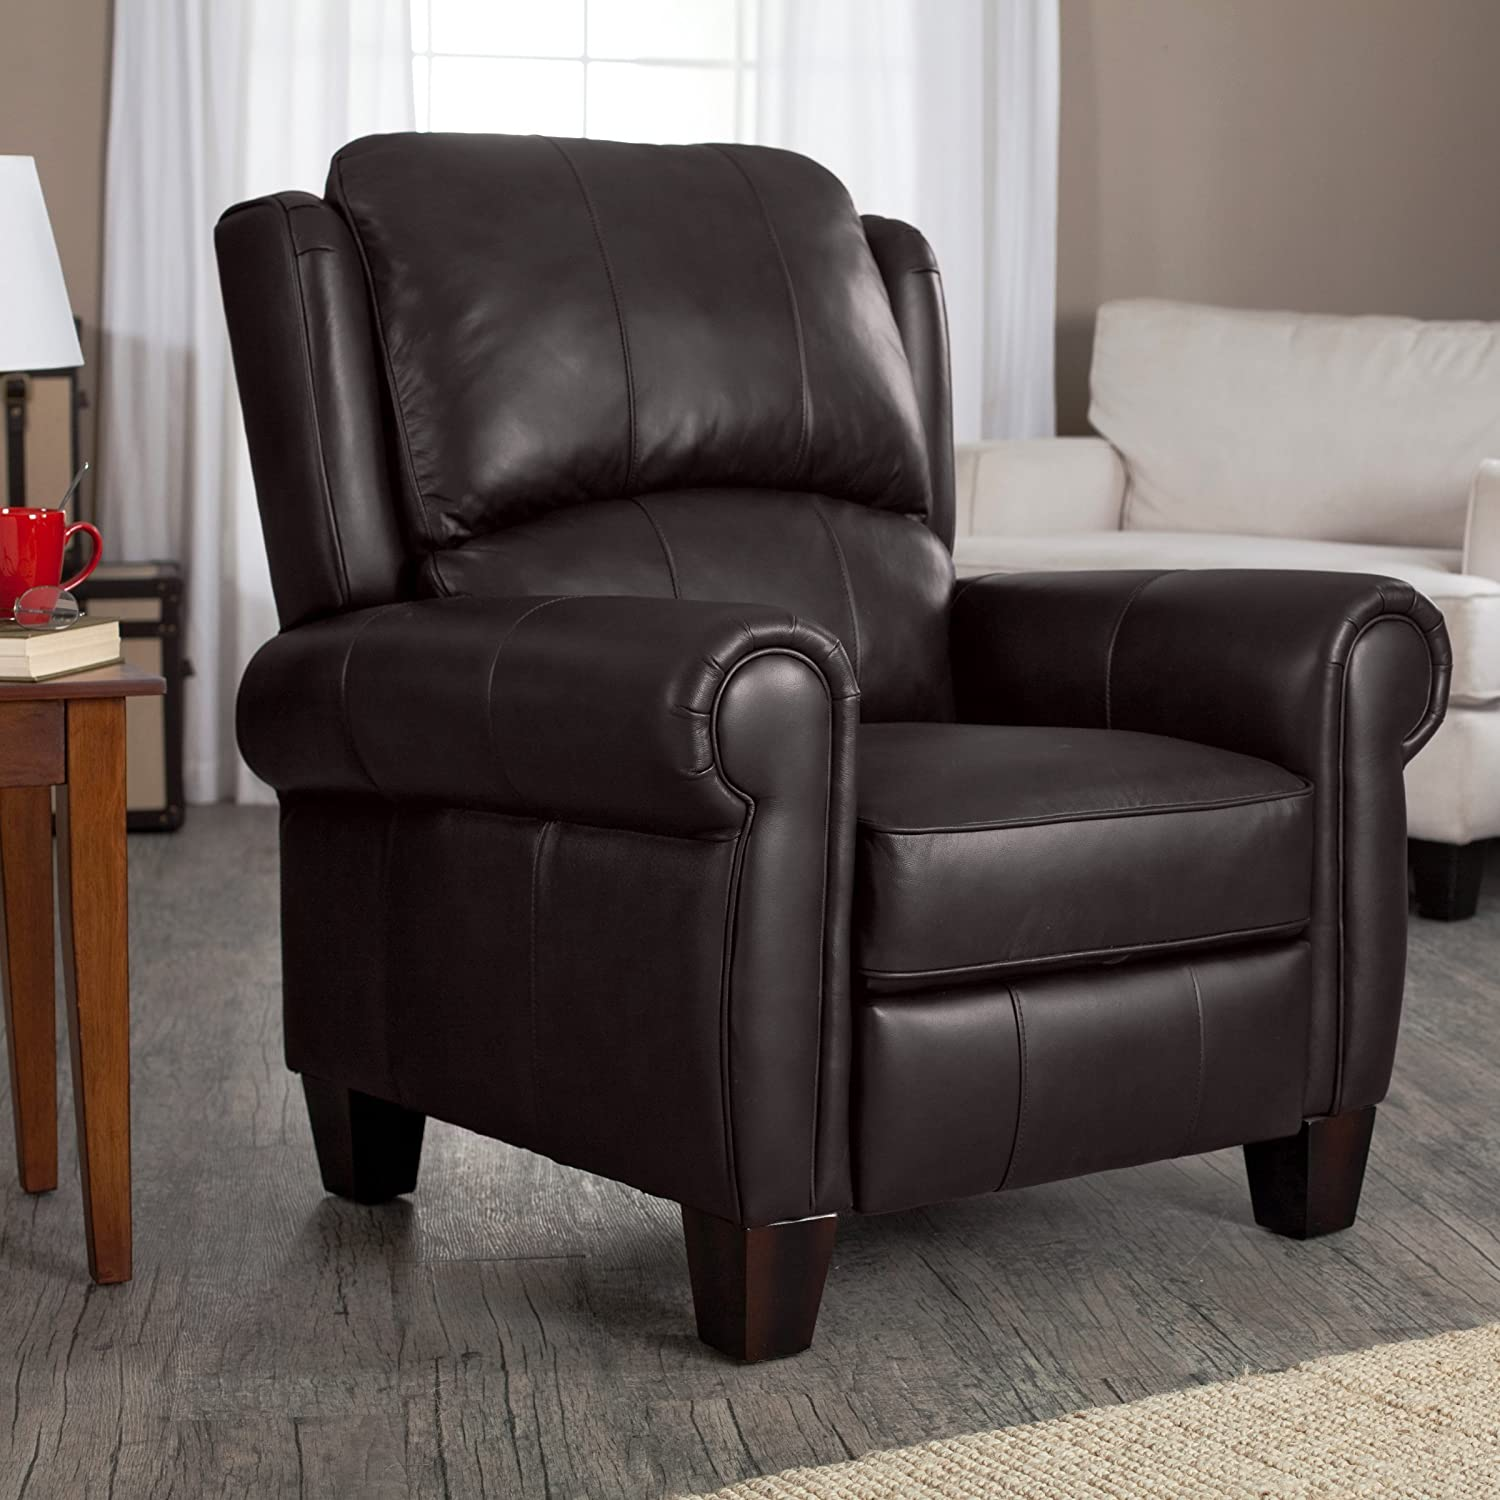 Amazon.com Brown Leather Recliner-Living Room Furniture-Barcalounger Office Chair Recliners Charleston Wingback-Buy Today Kitchen u0026 Dining & Amazon.com: Brown Leather Recliner-Living Room Furniture ... islam-shia.org